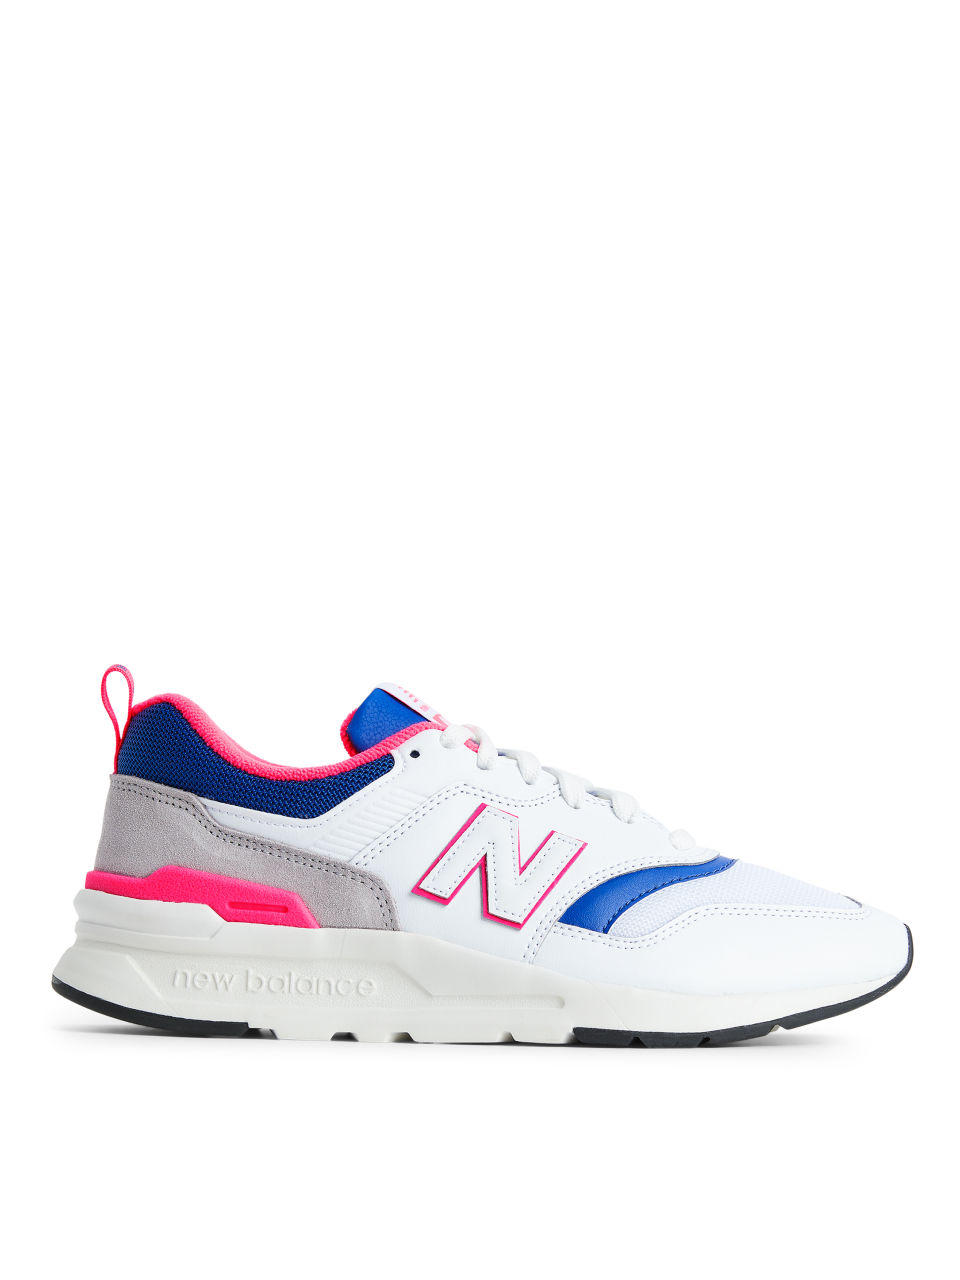 Front image of Arket new balance 997 in white